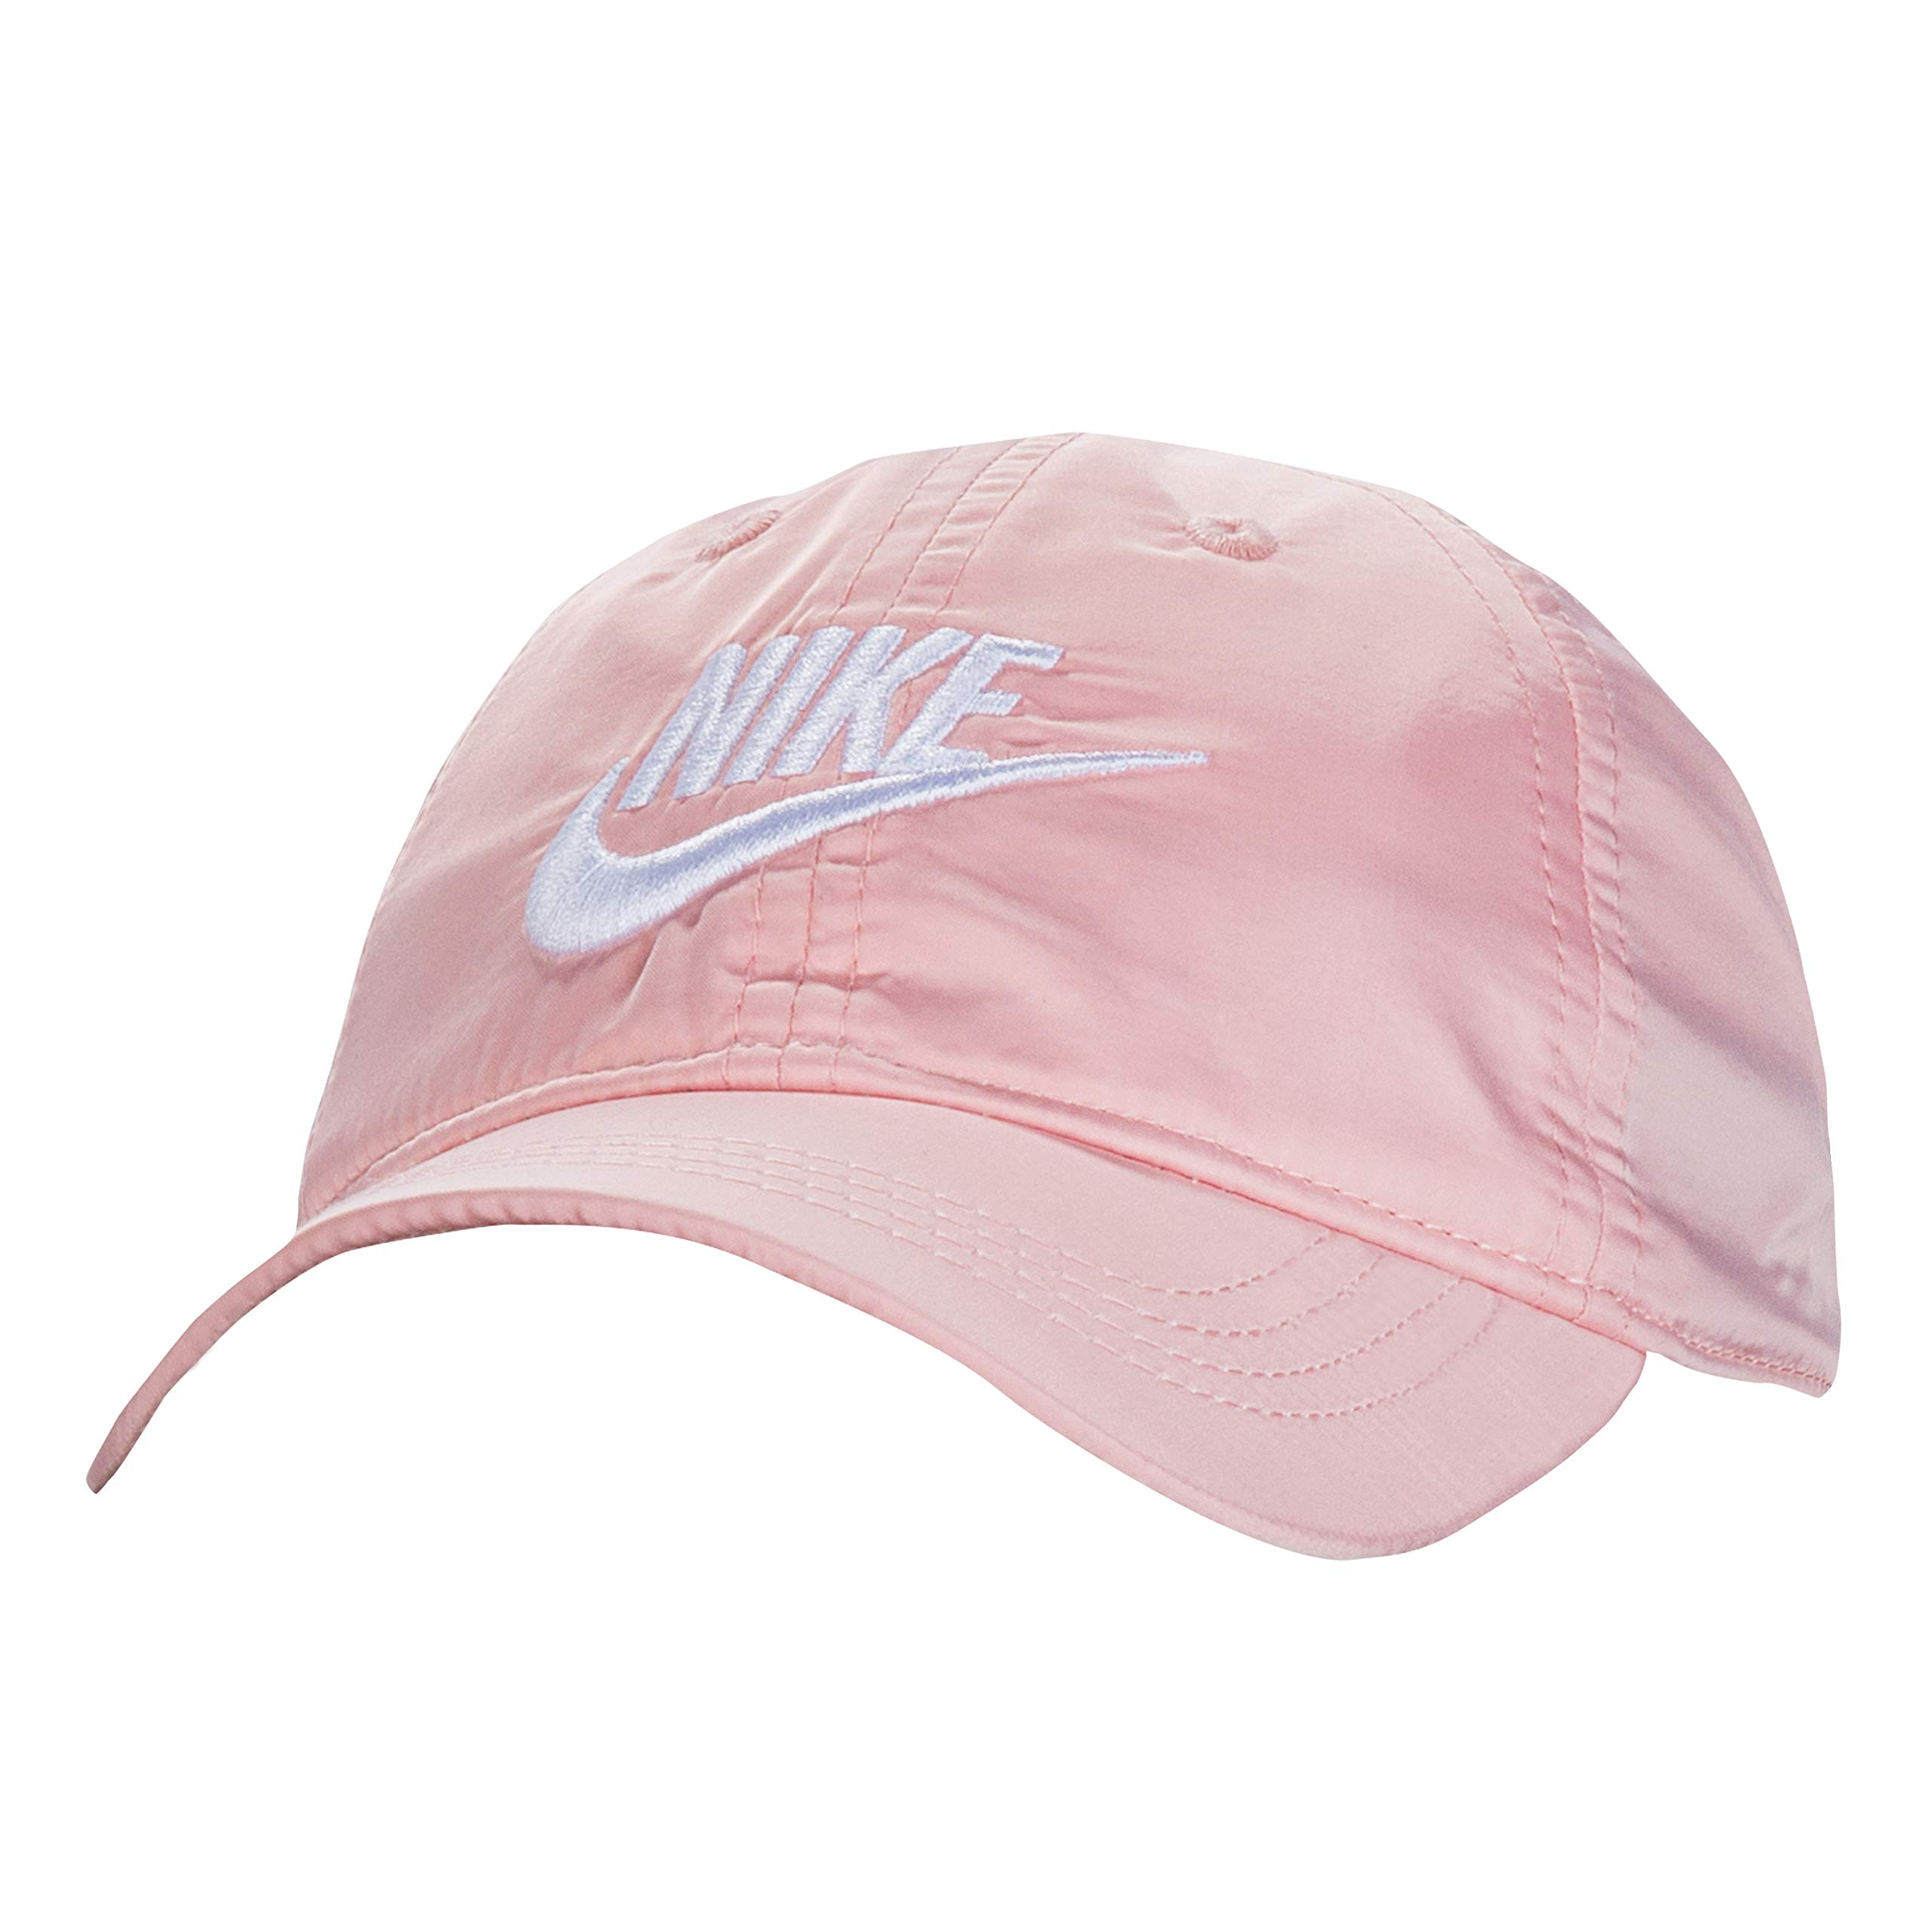 NIKE Children's Apparel Kids' Little Classic Ripstop Basball Hat, Bleached Coral Satin, O/S